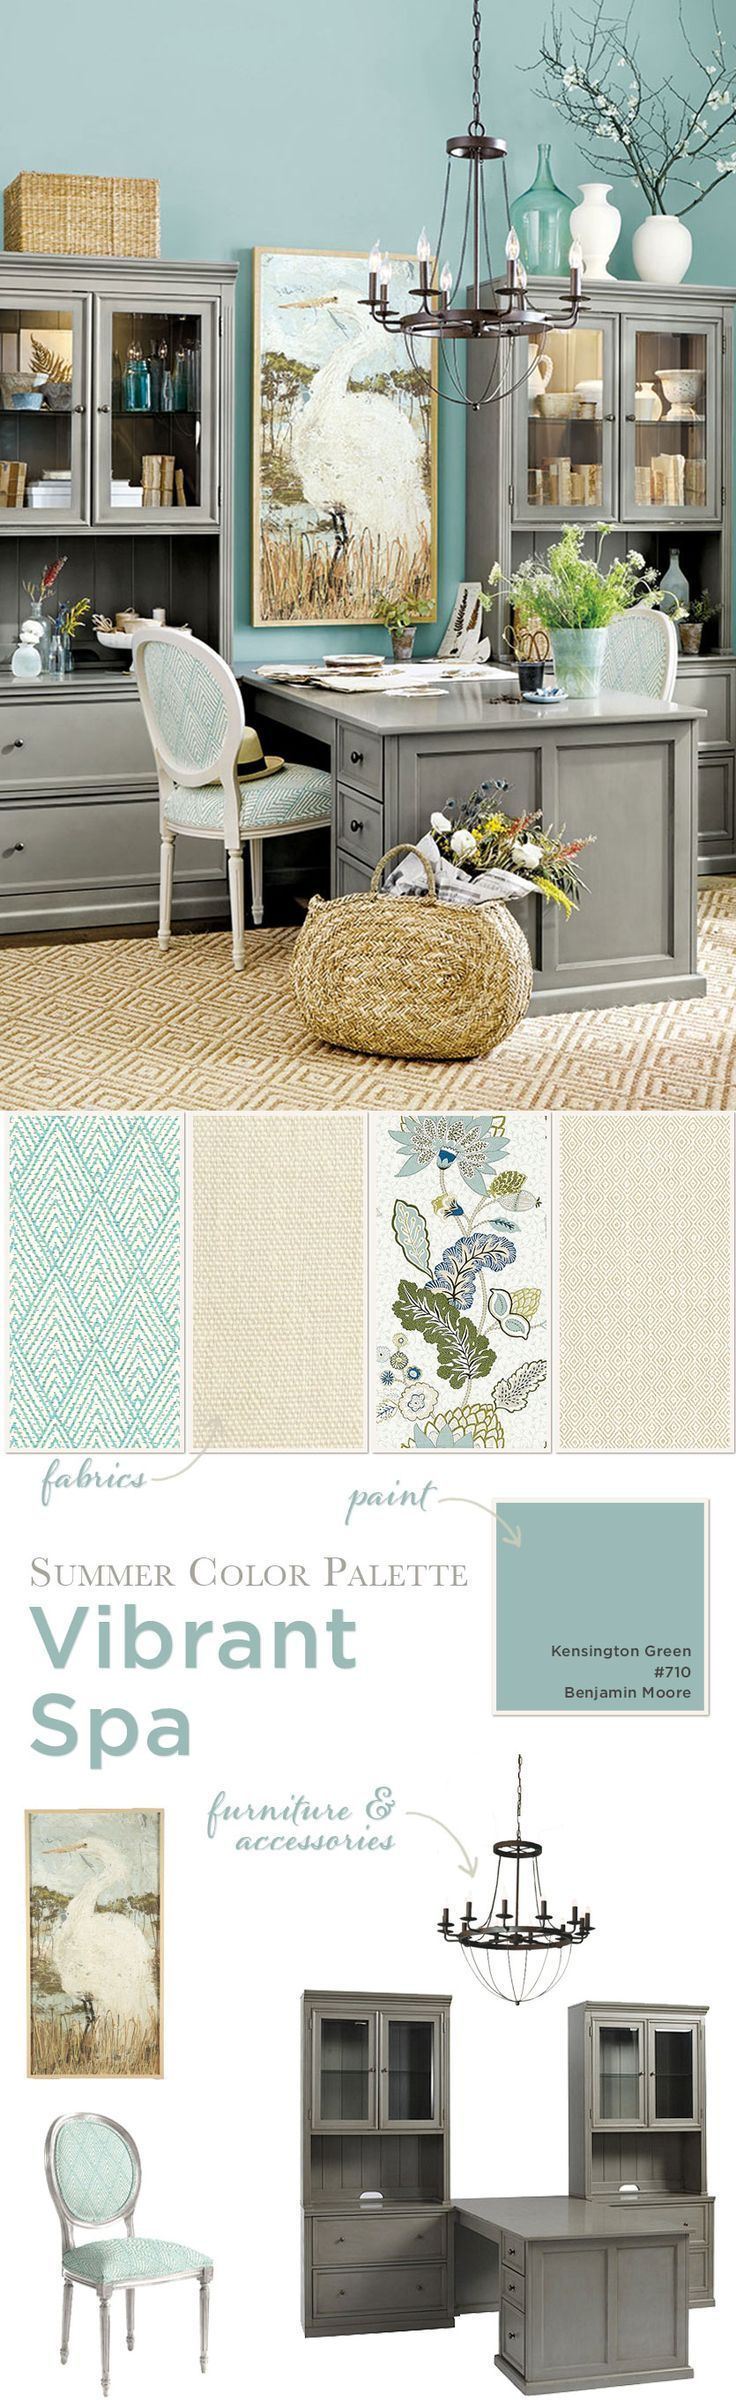 5 Outdoor Decorating Rules to Live By | Gray desk, Benjamin moore ...